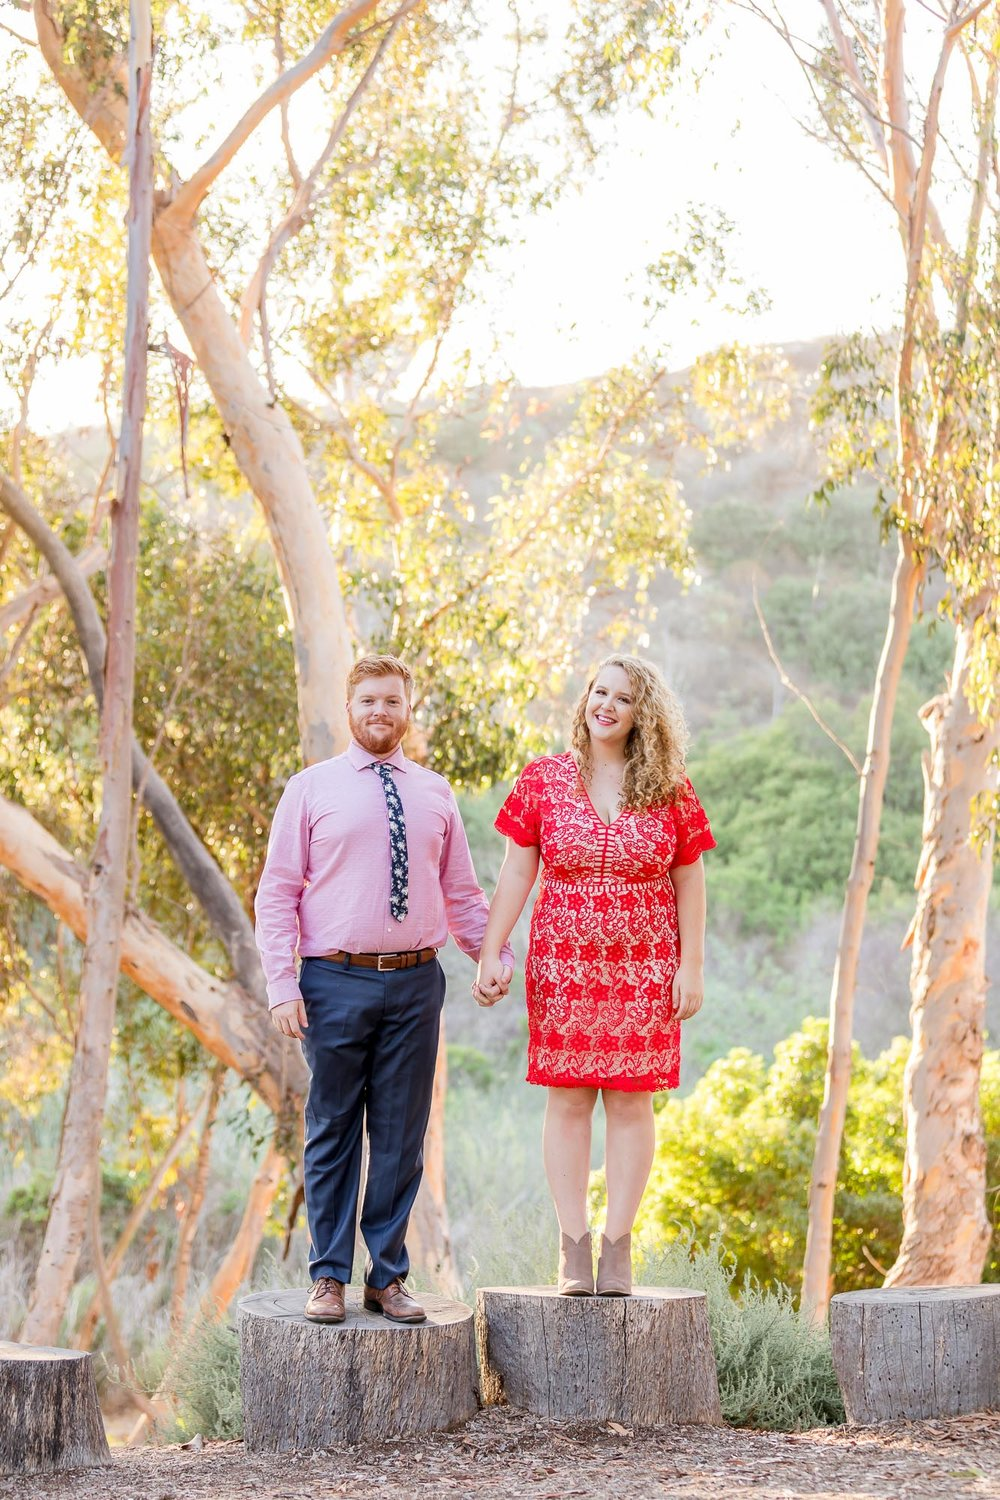 Tierney_Gregory_Batiquitos_Lagoon_Engagement_Session_079.jpg